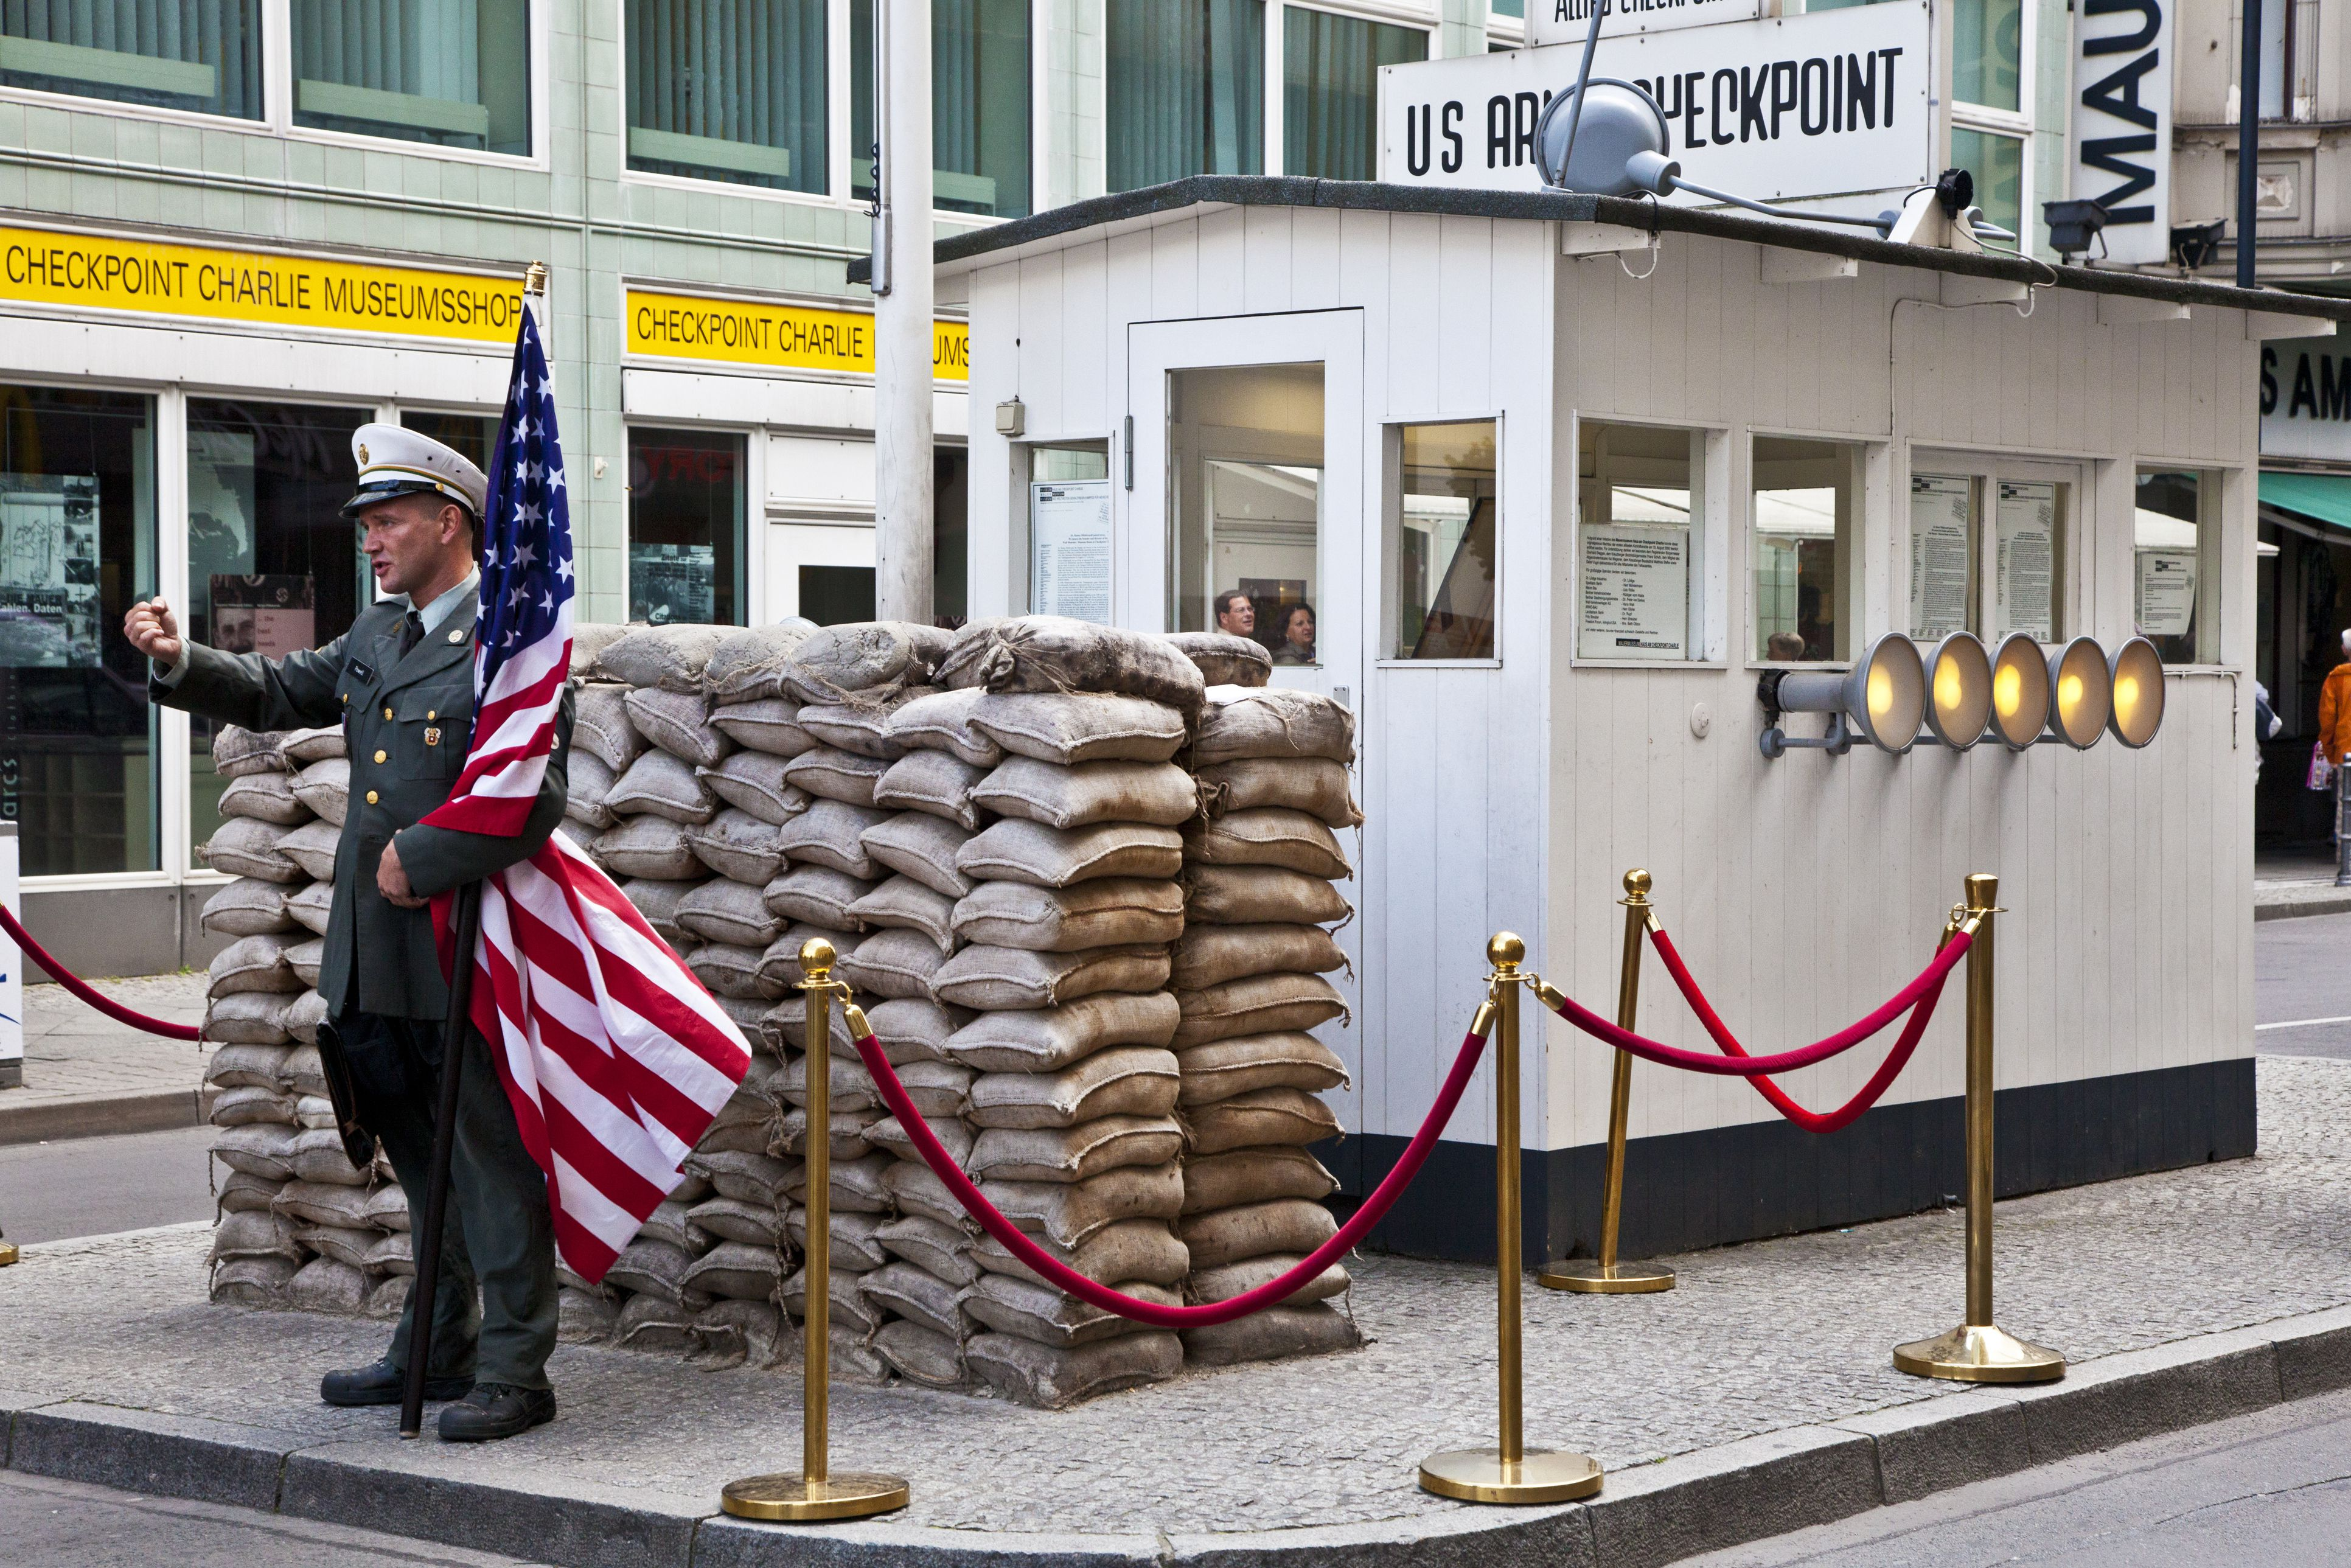 Checkpoint Charlie which was the famous Berlin Wall crossing between East and West Berlin